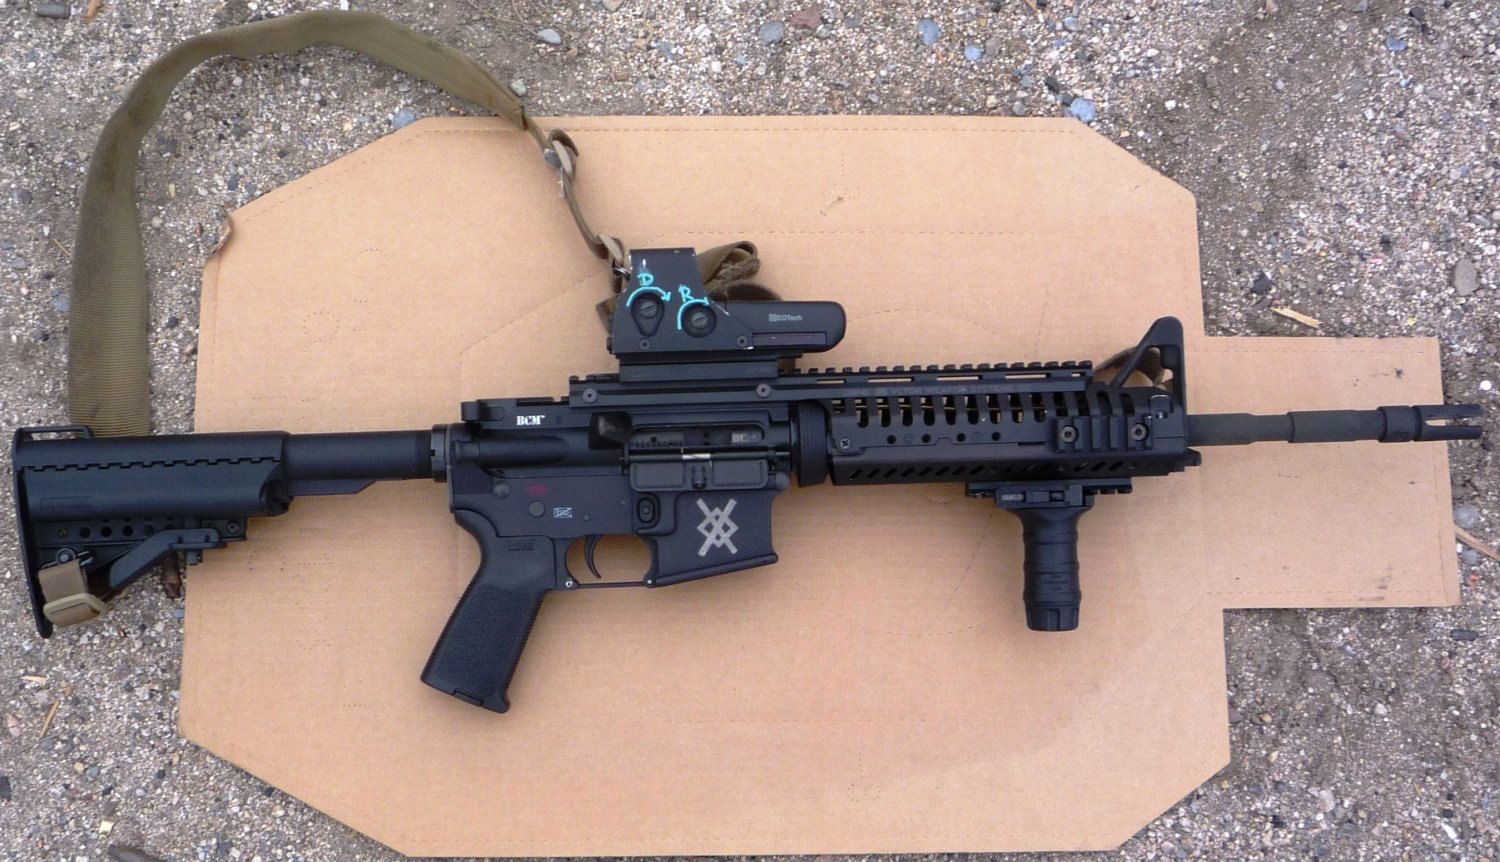 The Big M4 Myth: 'Fouling caused by the direct impingement gas system makes the M4/M4A1 Carbine unreliable.'